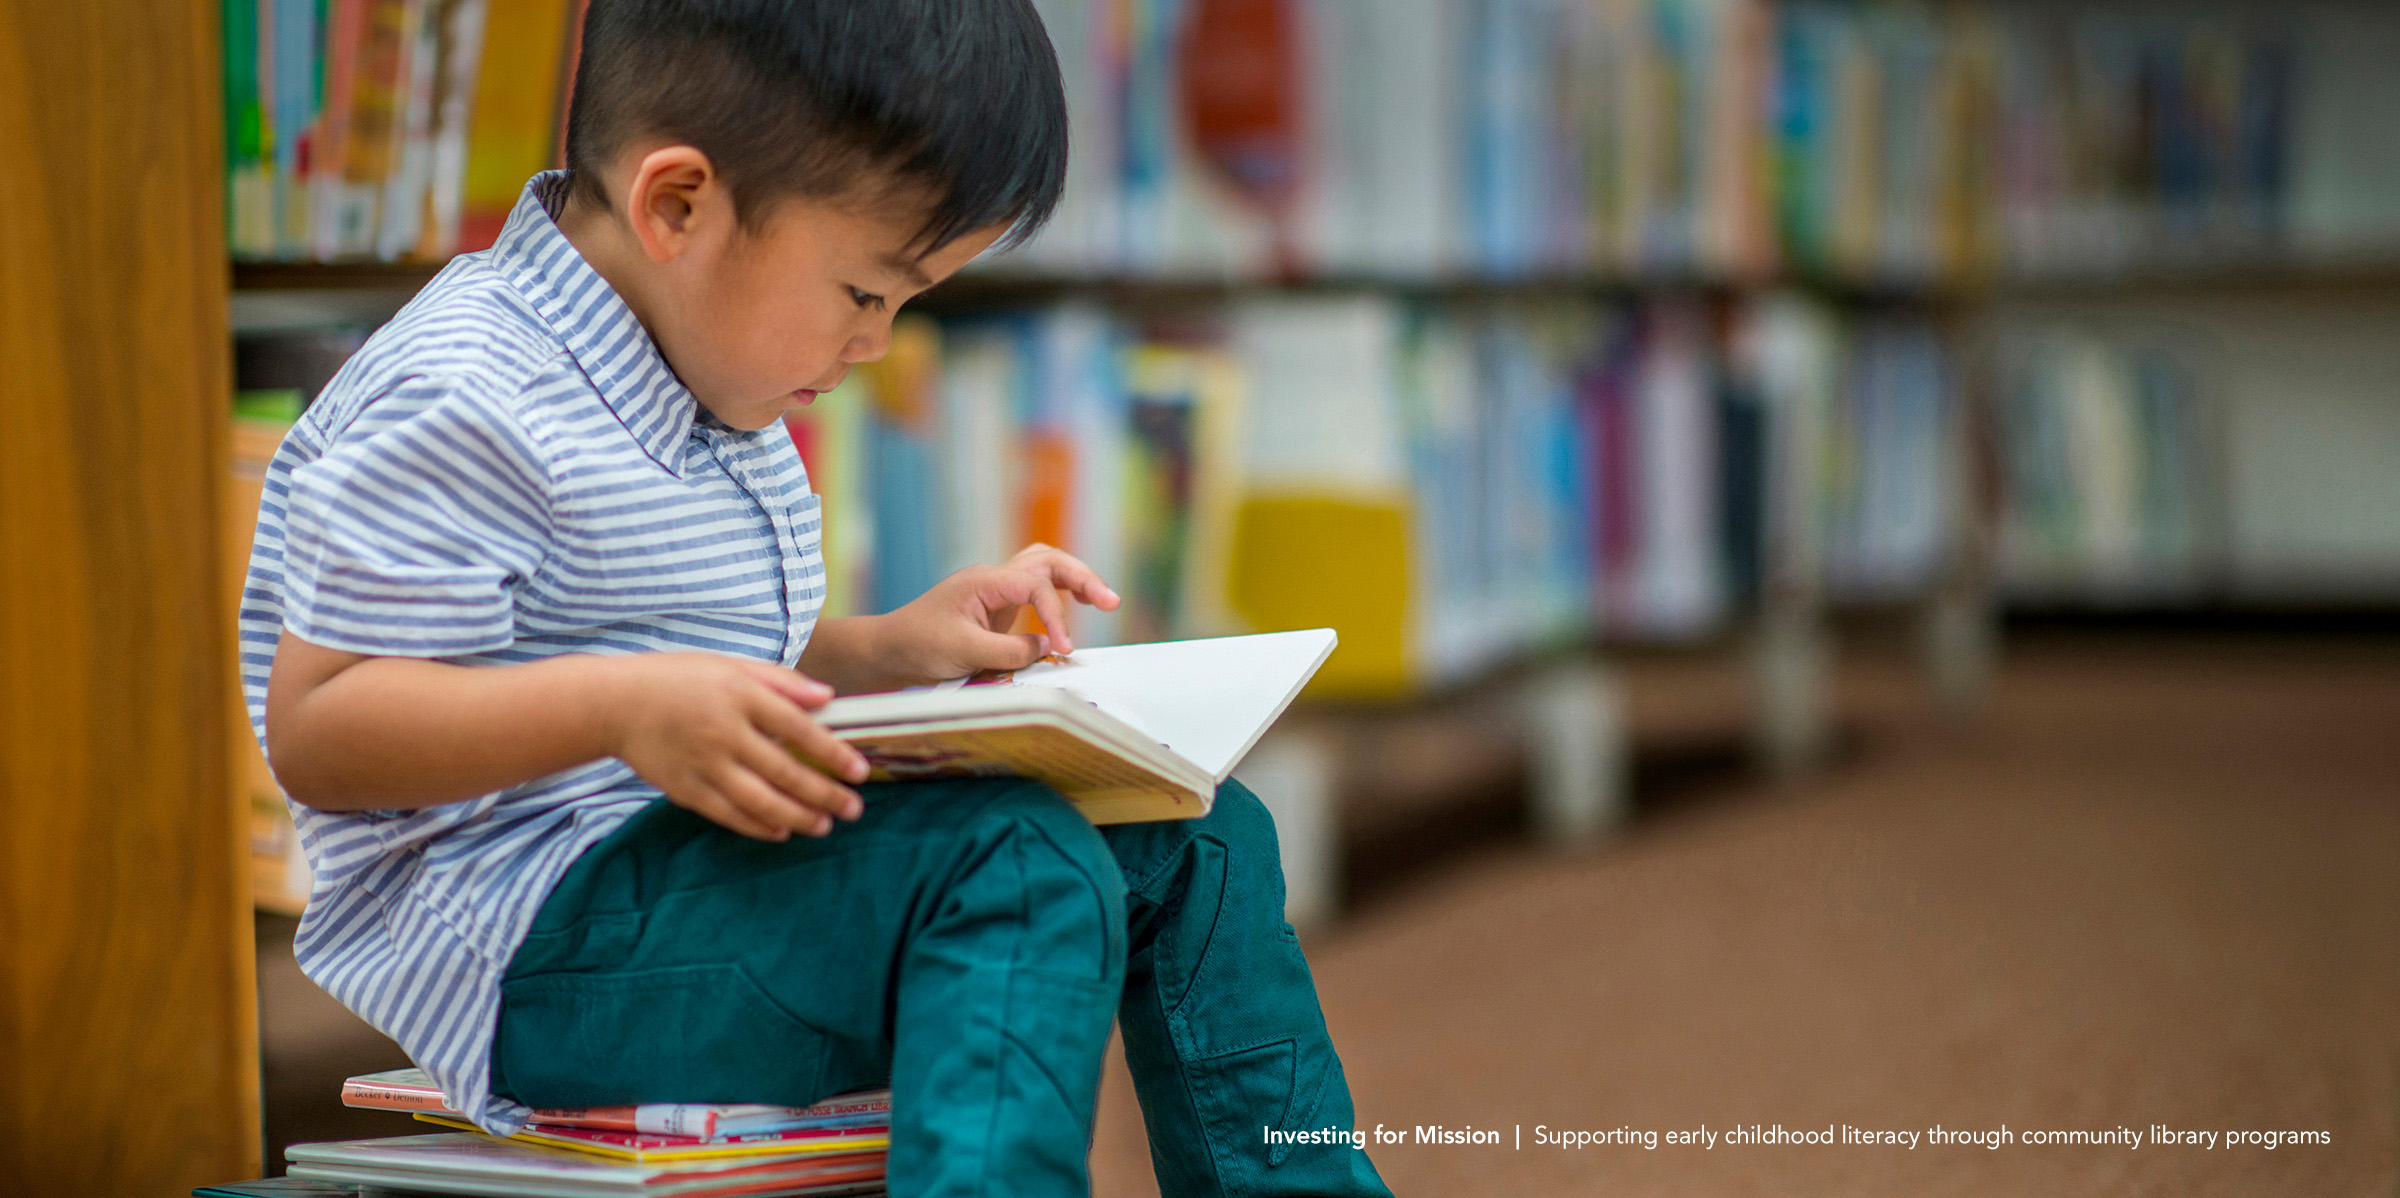 Investing for Mission   Supporting early childhood literacy through community library programs